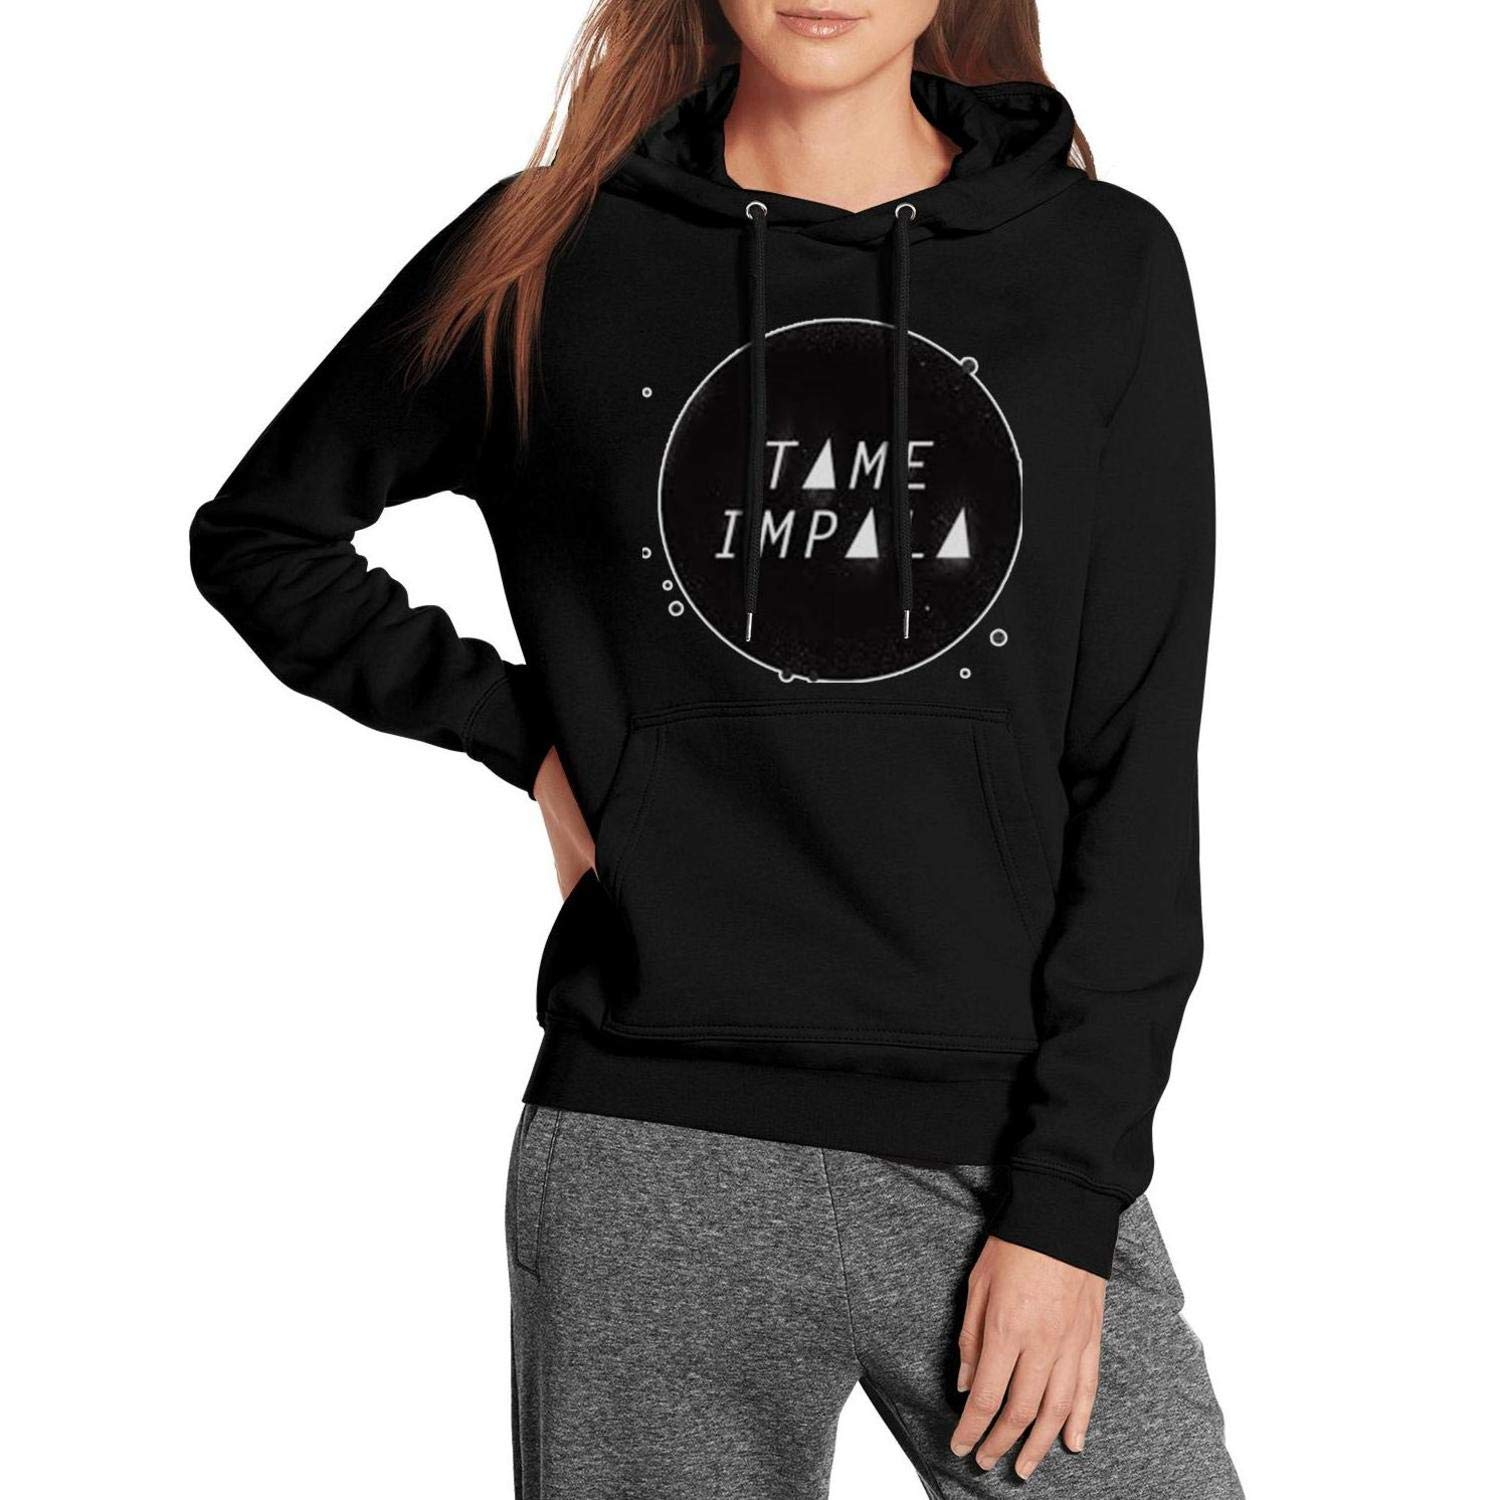 Fleece Pullover Hoodie Young Women Tame-Impala-AU